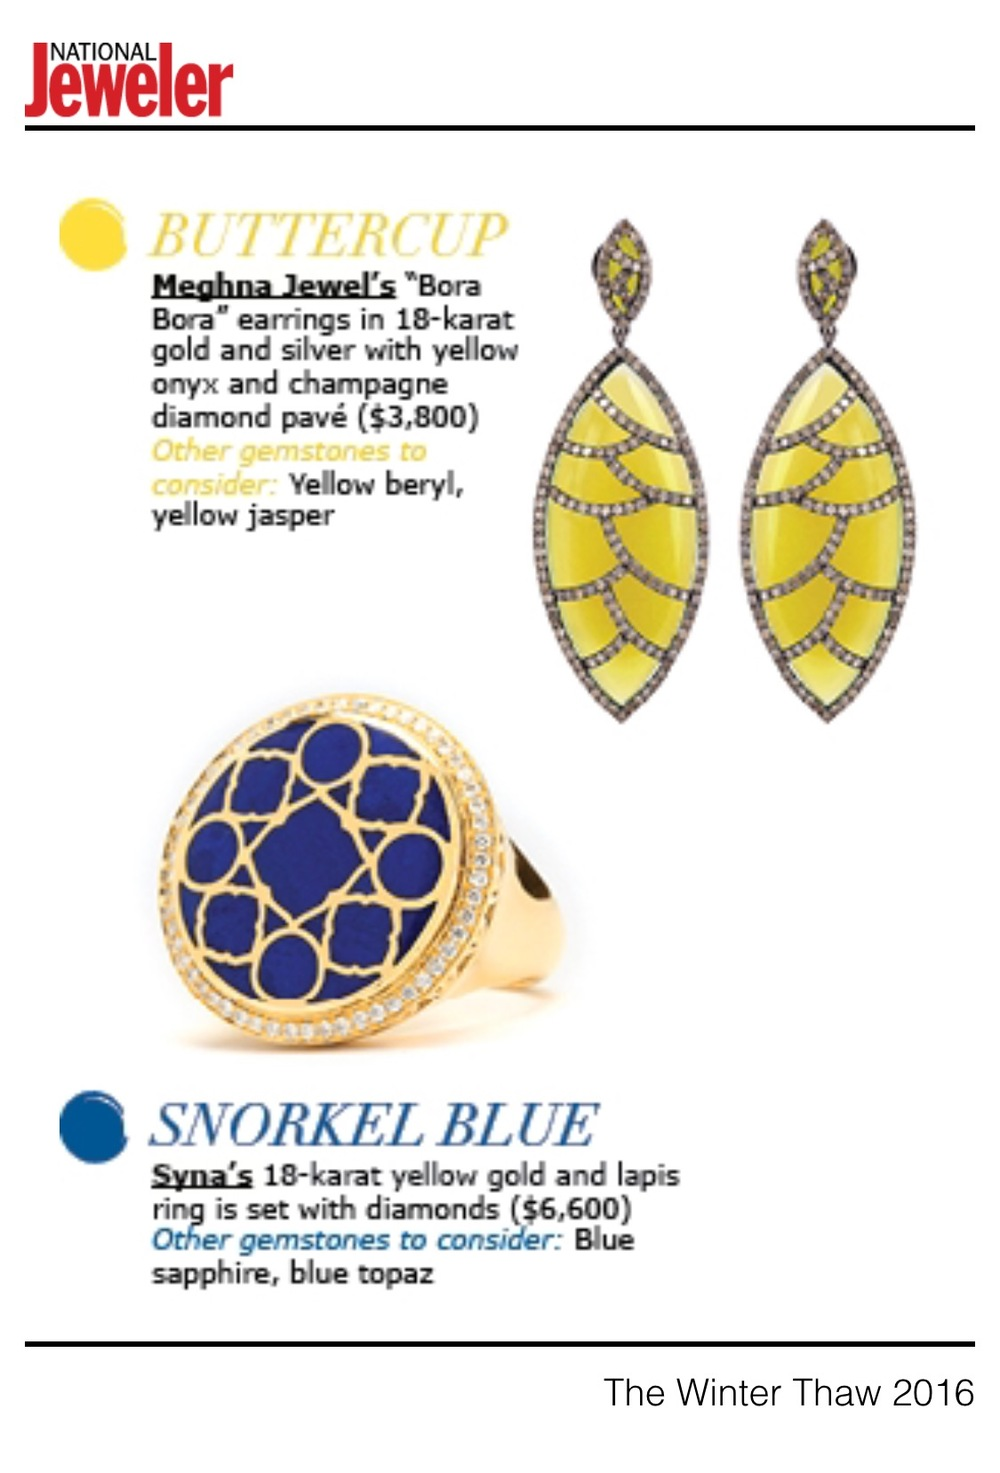 Bora Bora Earrings as featured in National Jeweler